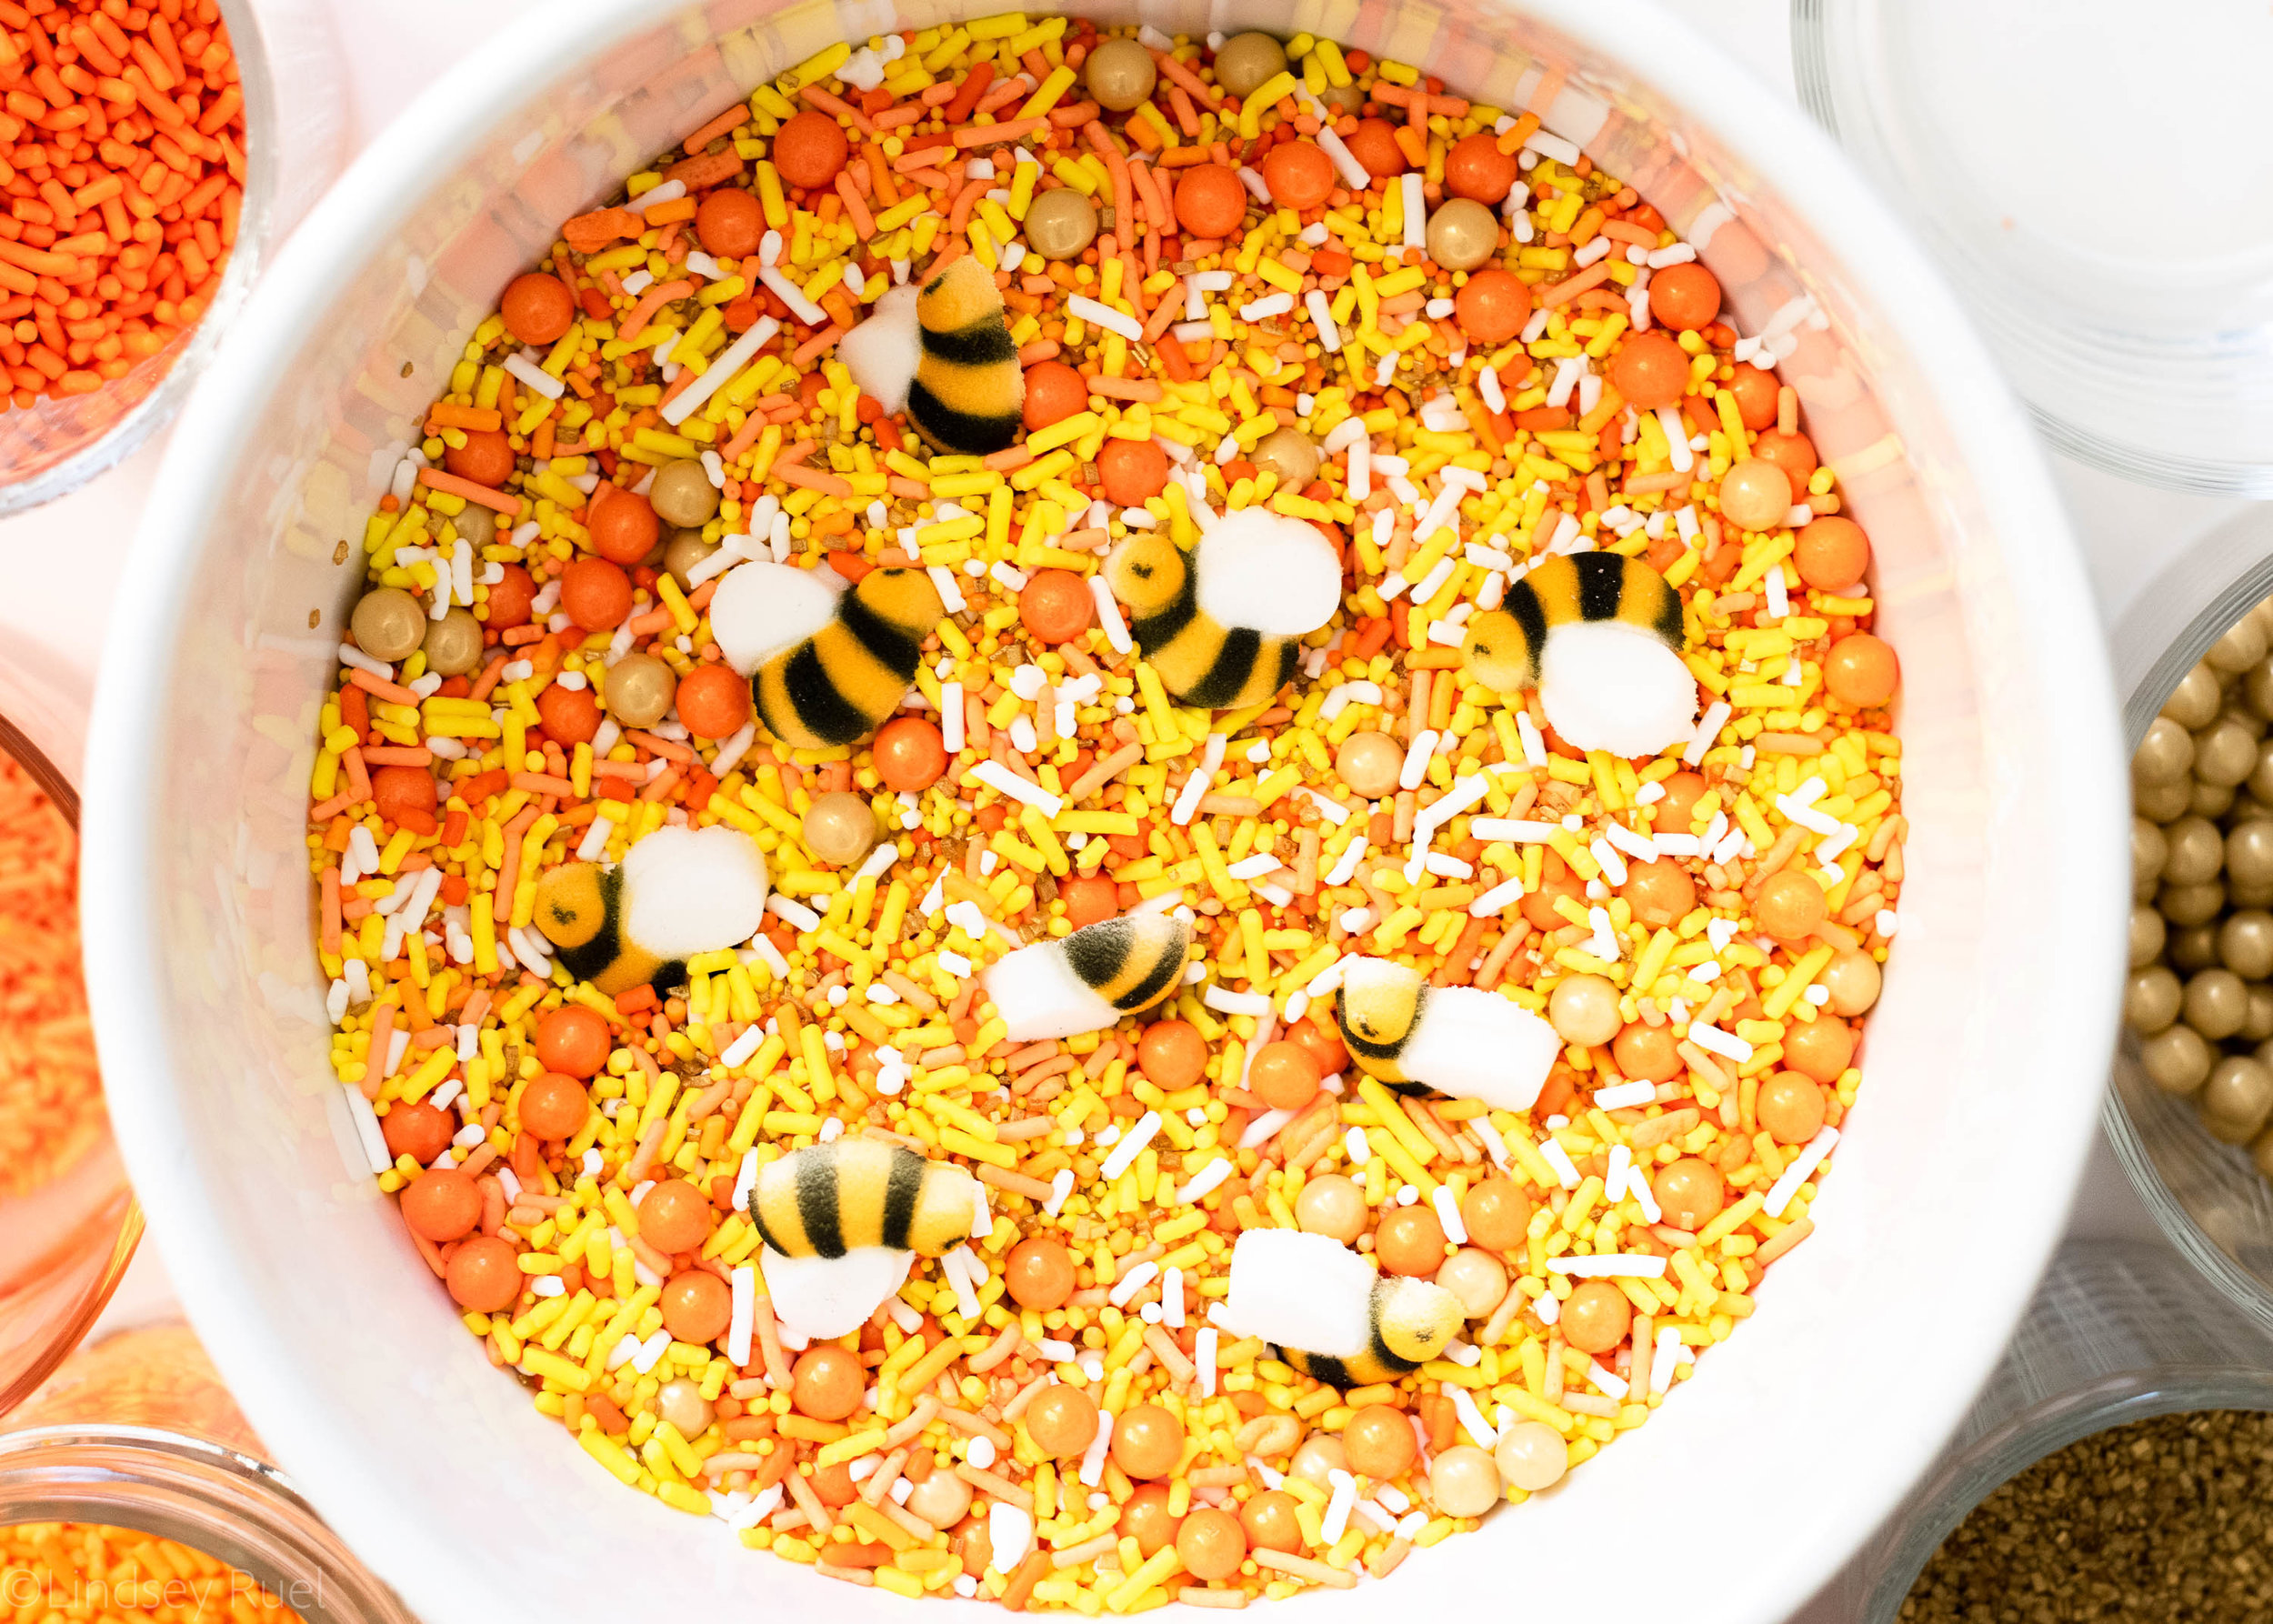 Custom Sprinkle Mix-6.jpg